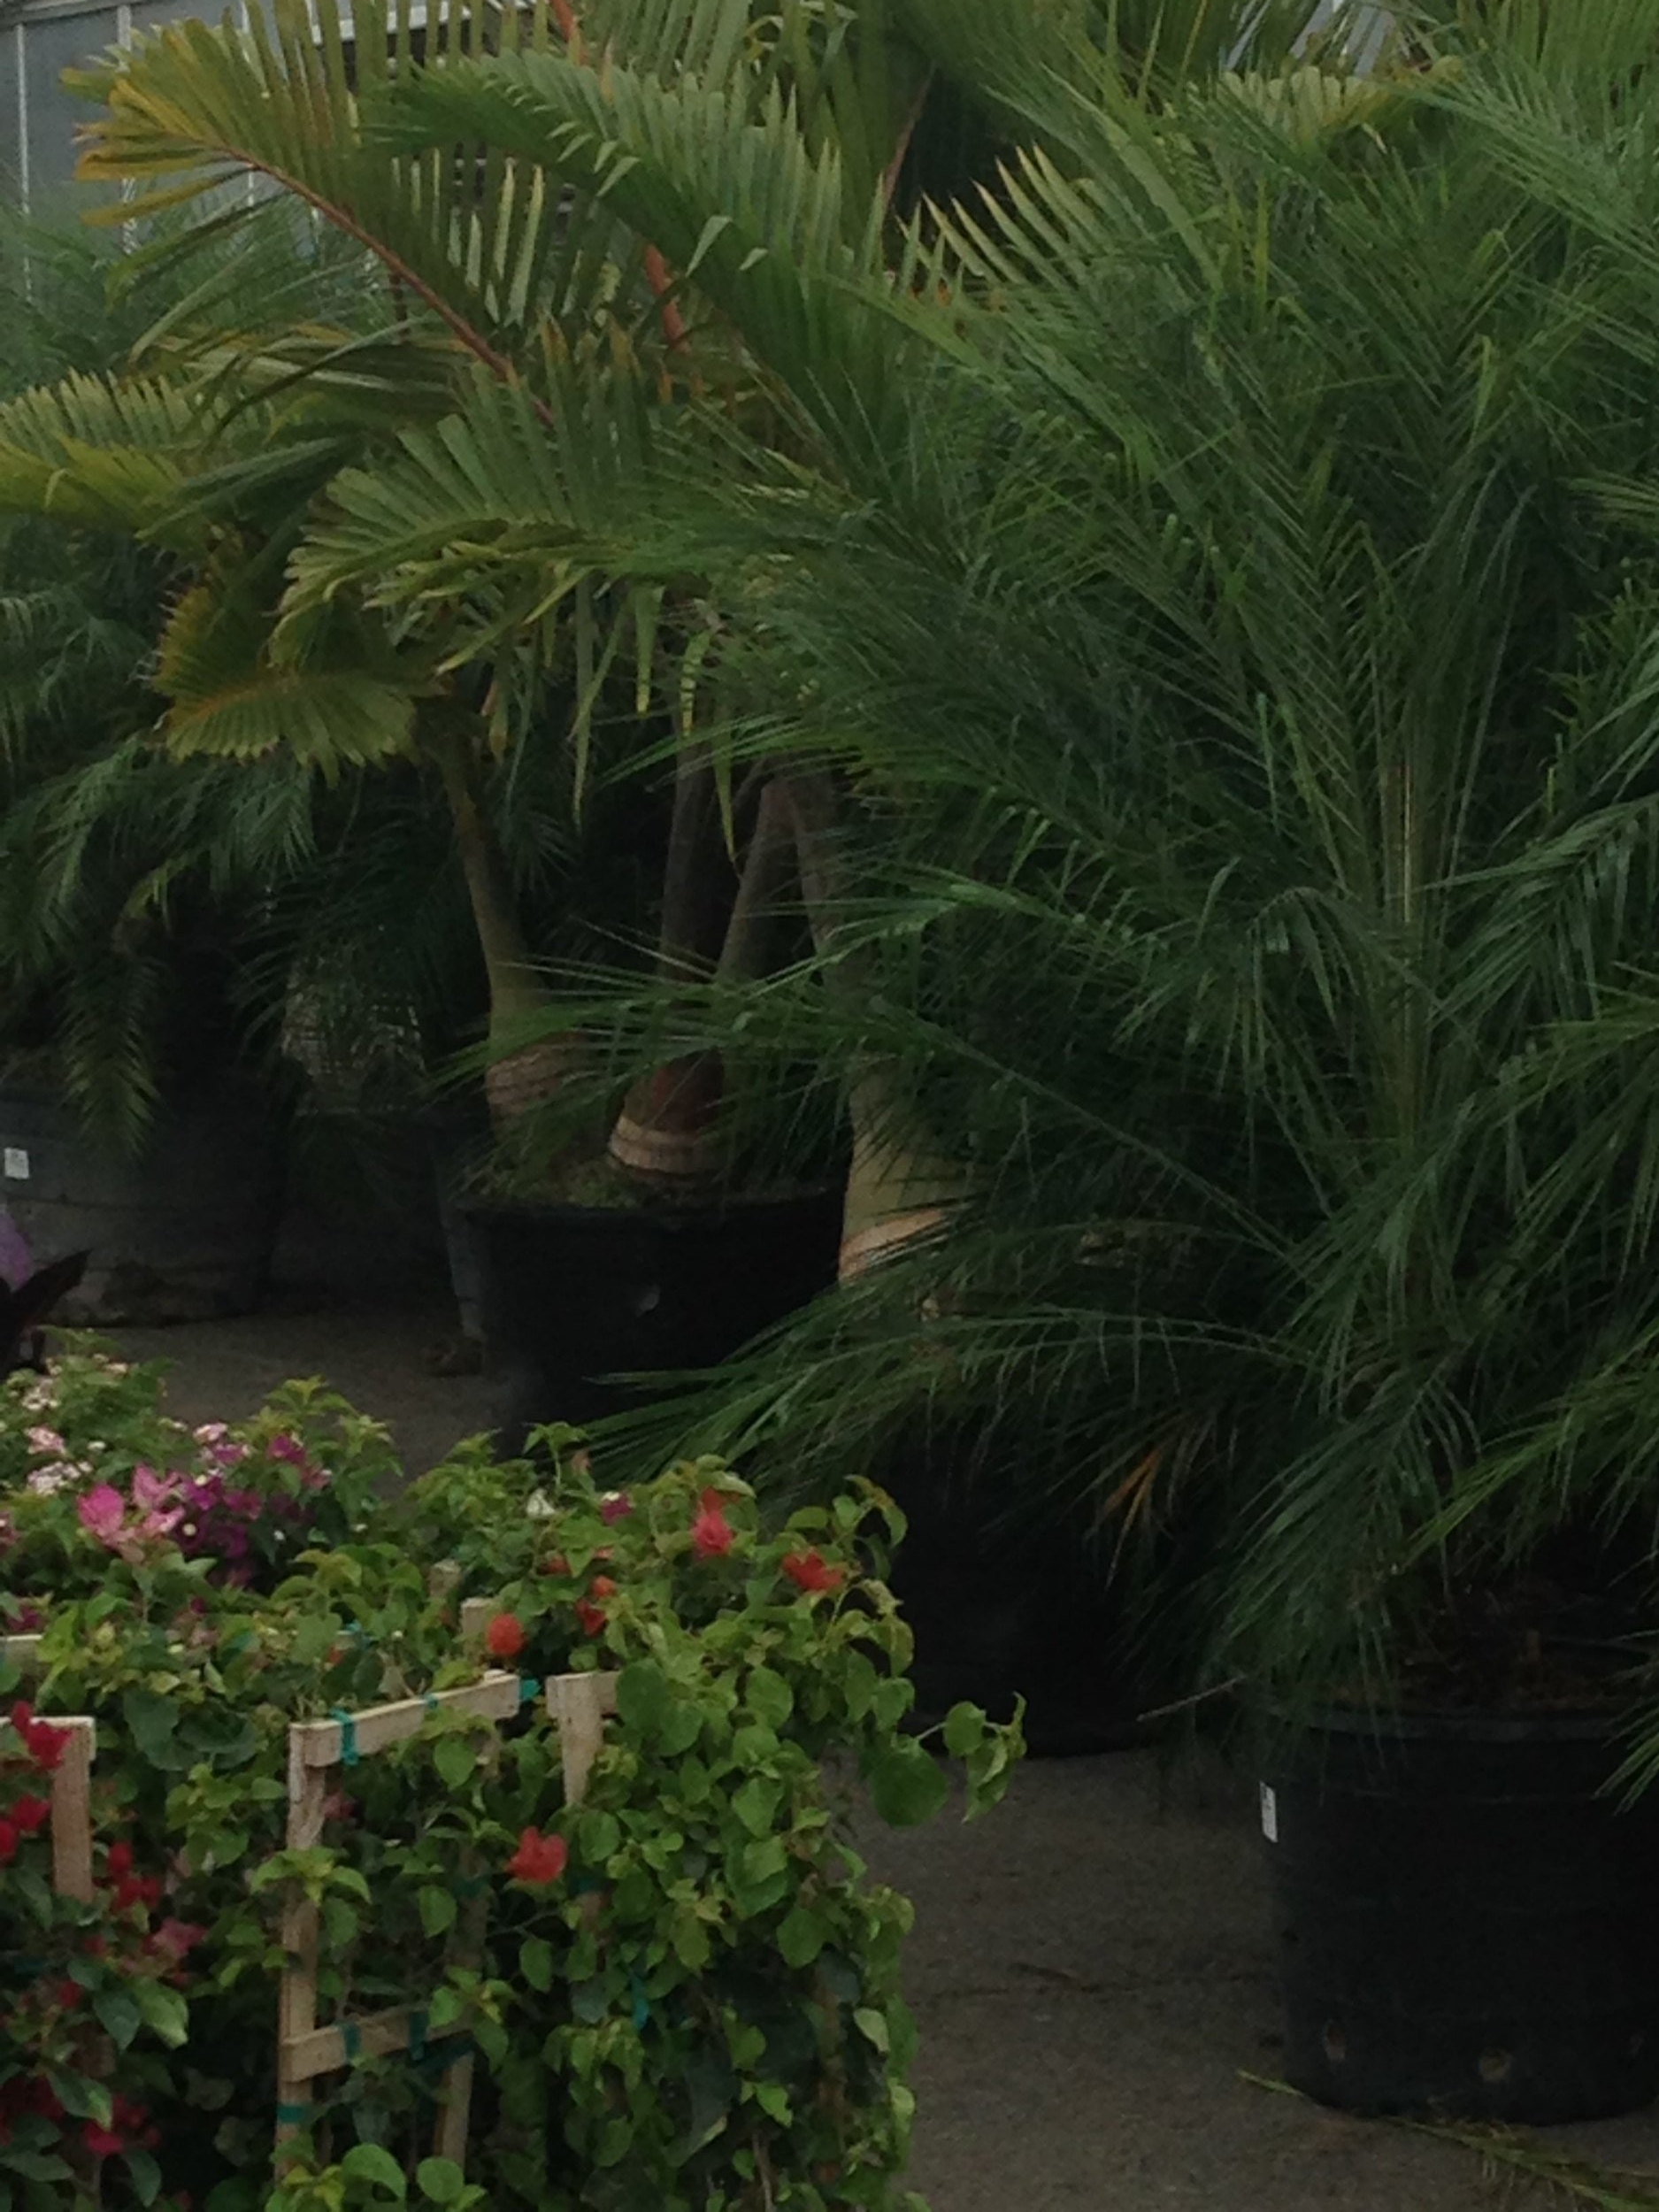 wholesale greenhouse with palm trees